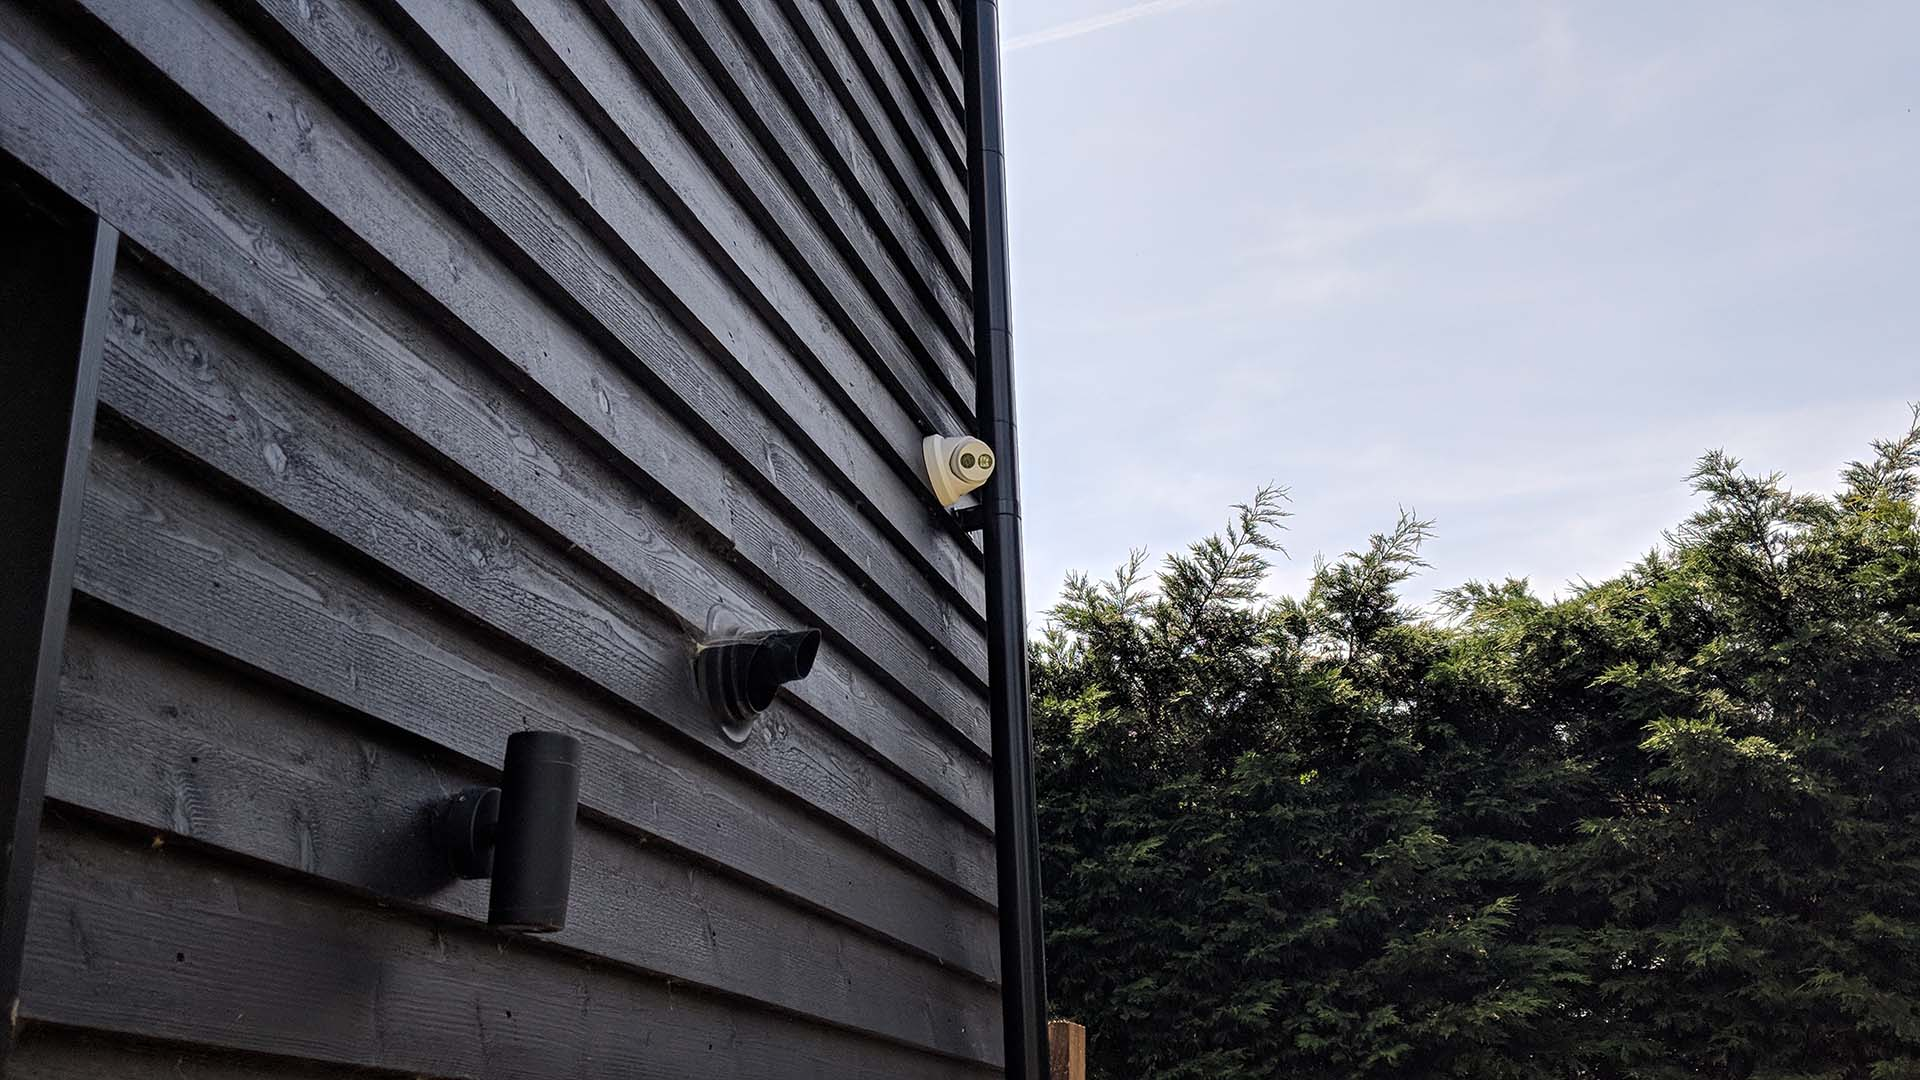 4K CCTV Installation in Maldon, Essex